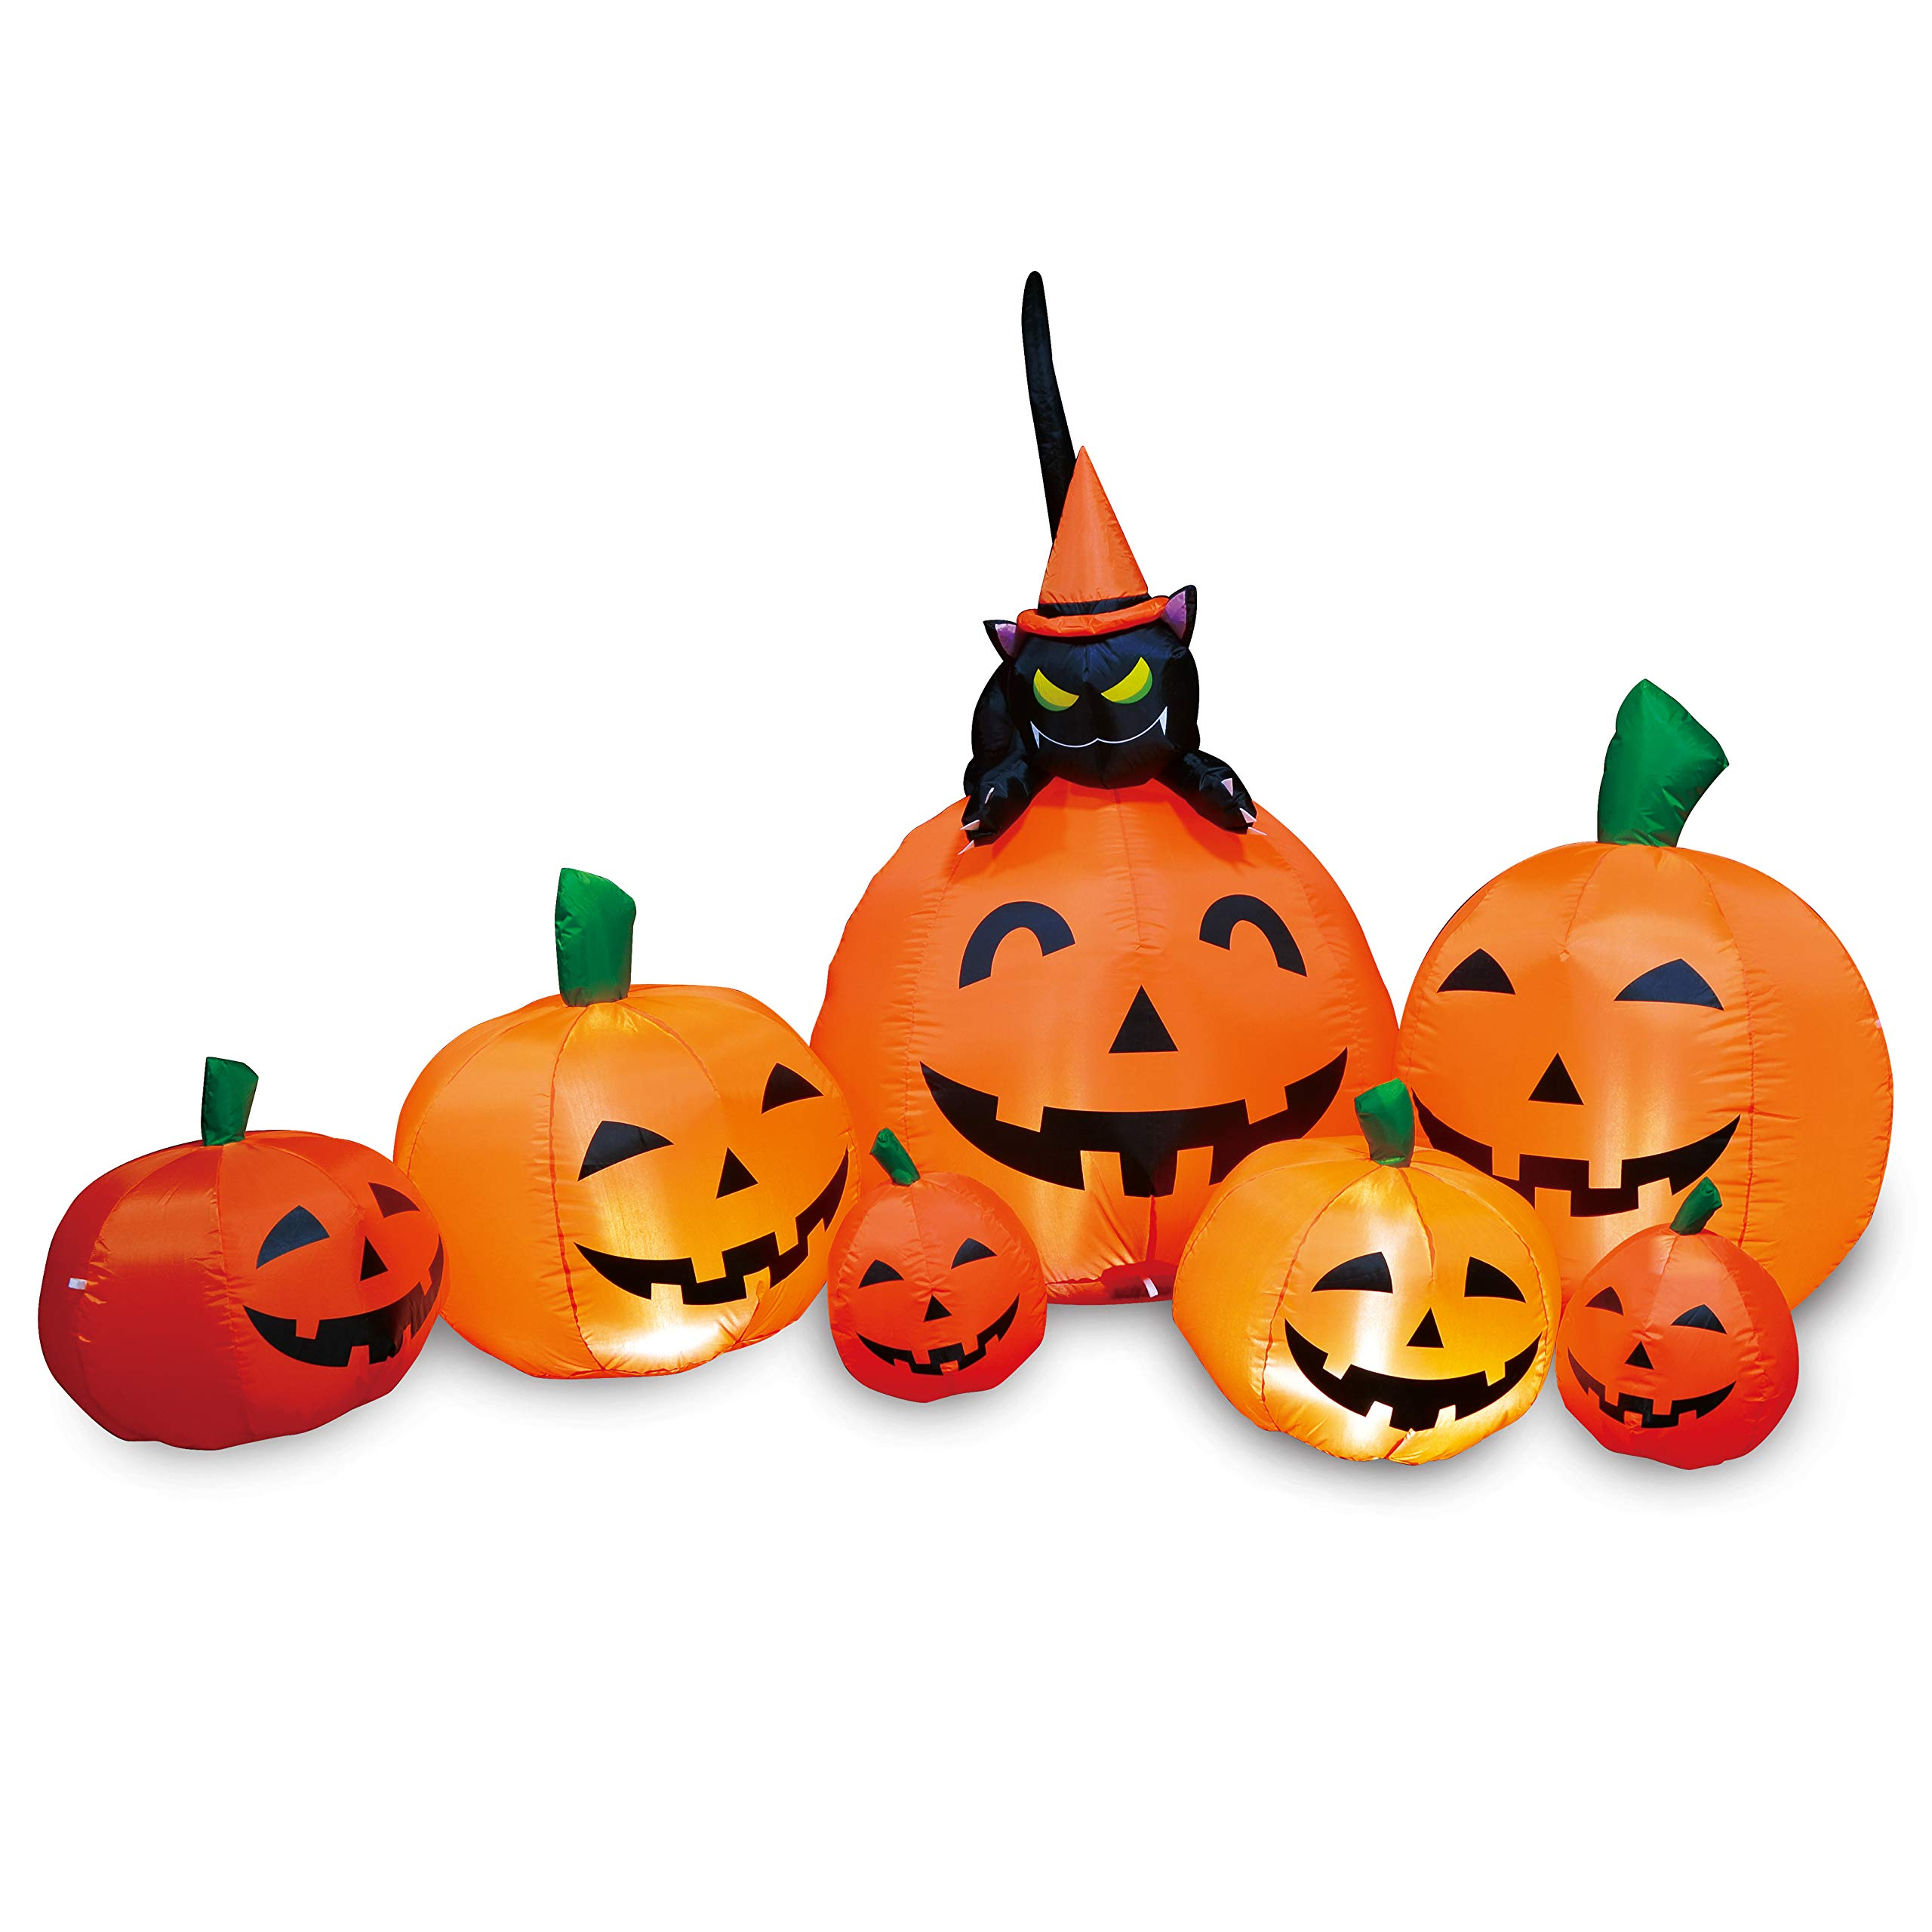 Joiedomi Halloween Inflatable Blow Up 7 Pumpkins with Witch's Cat - 7 Ft Wide